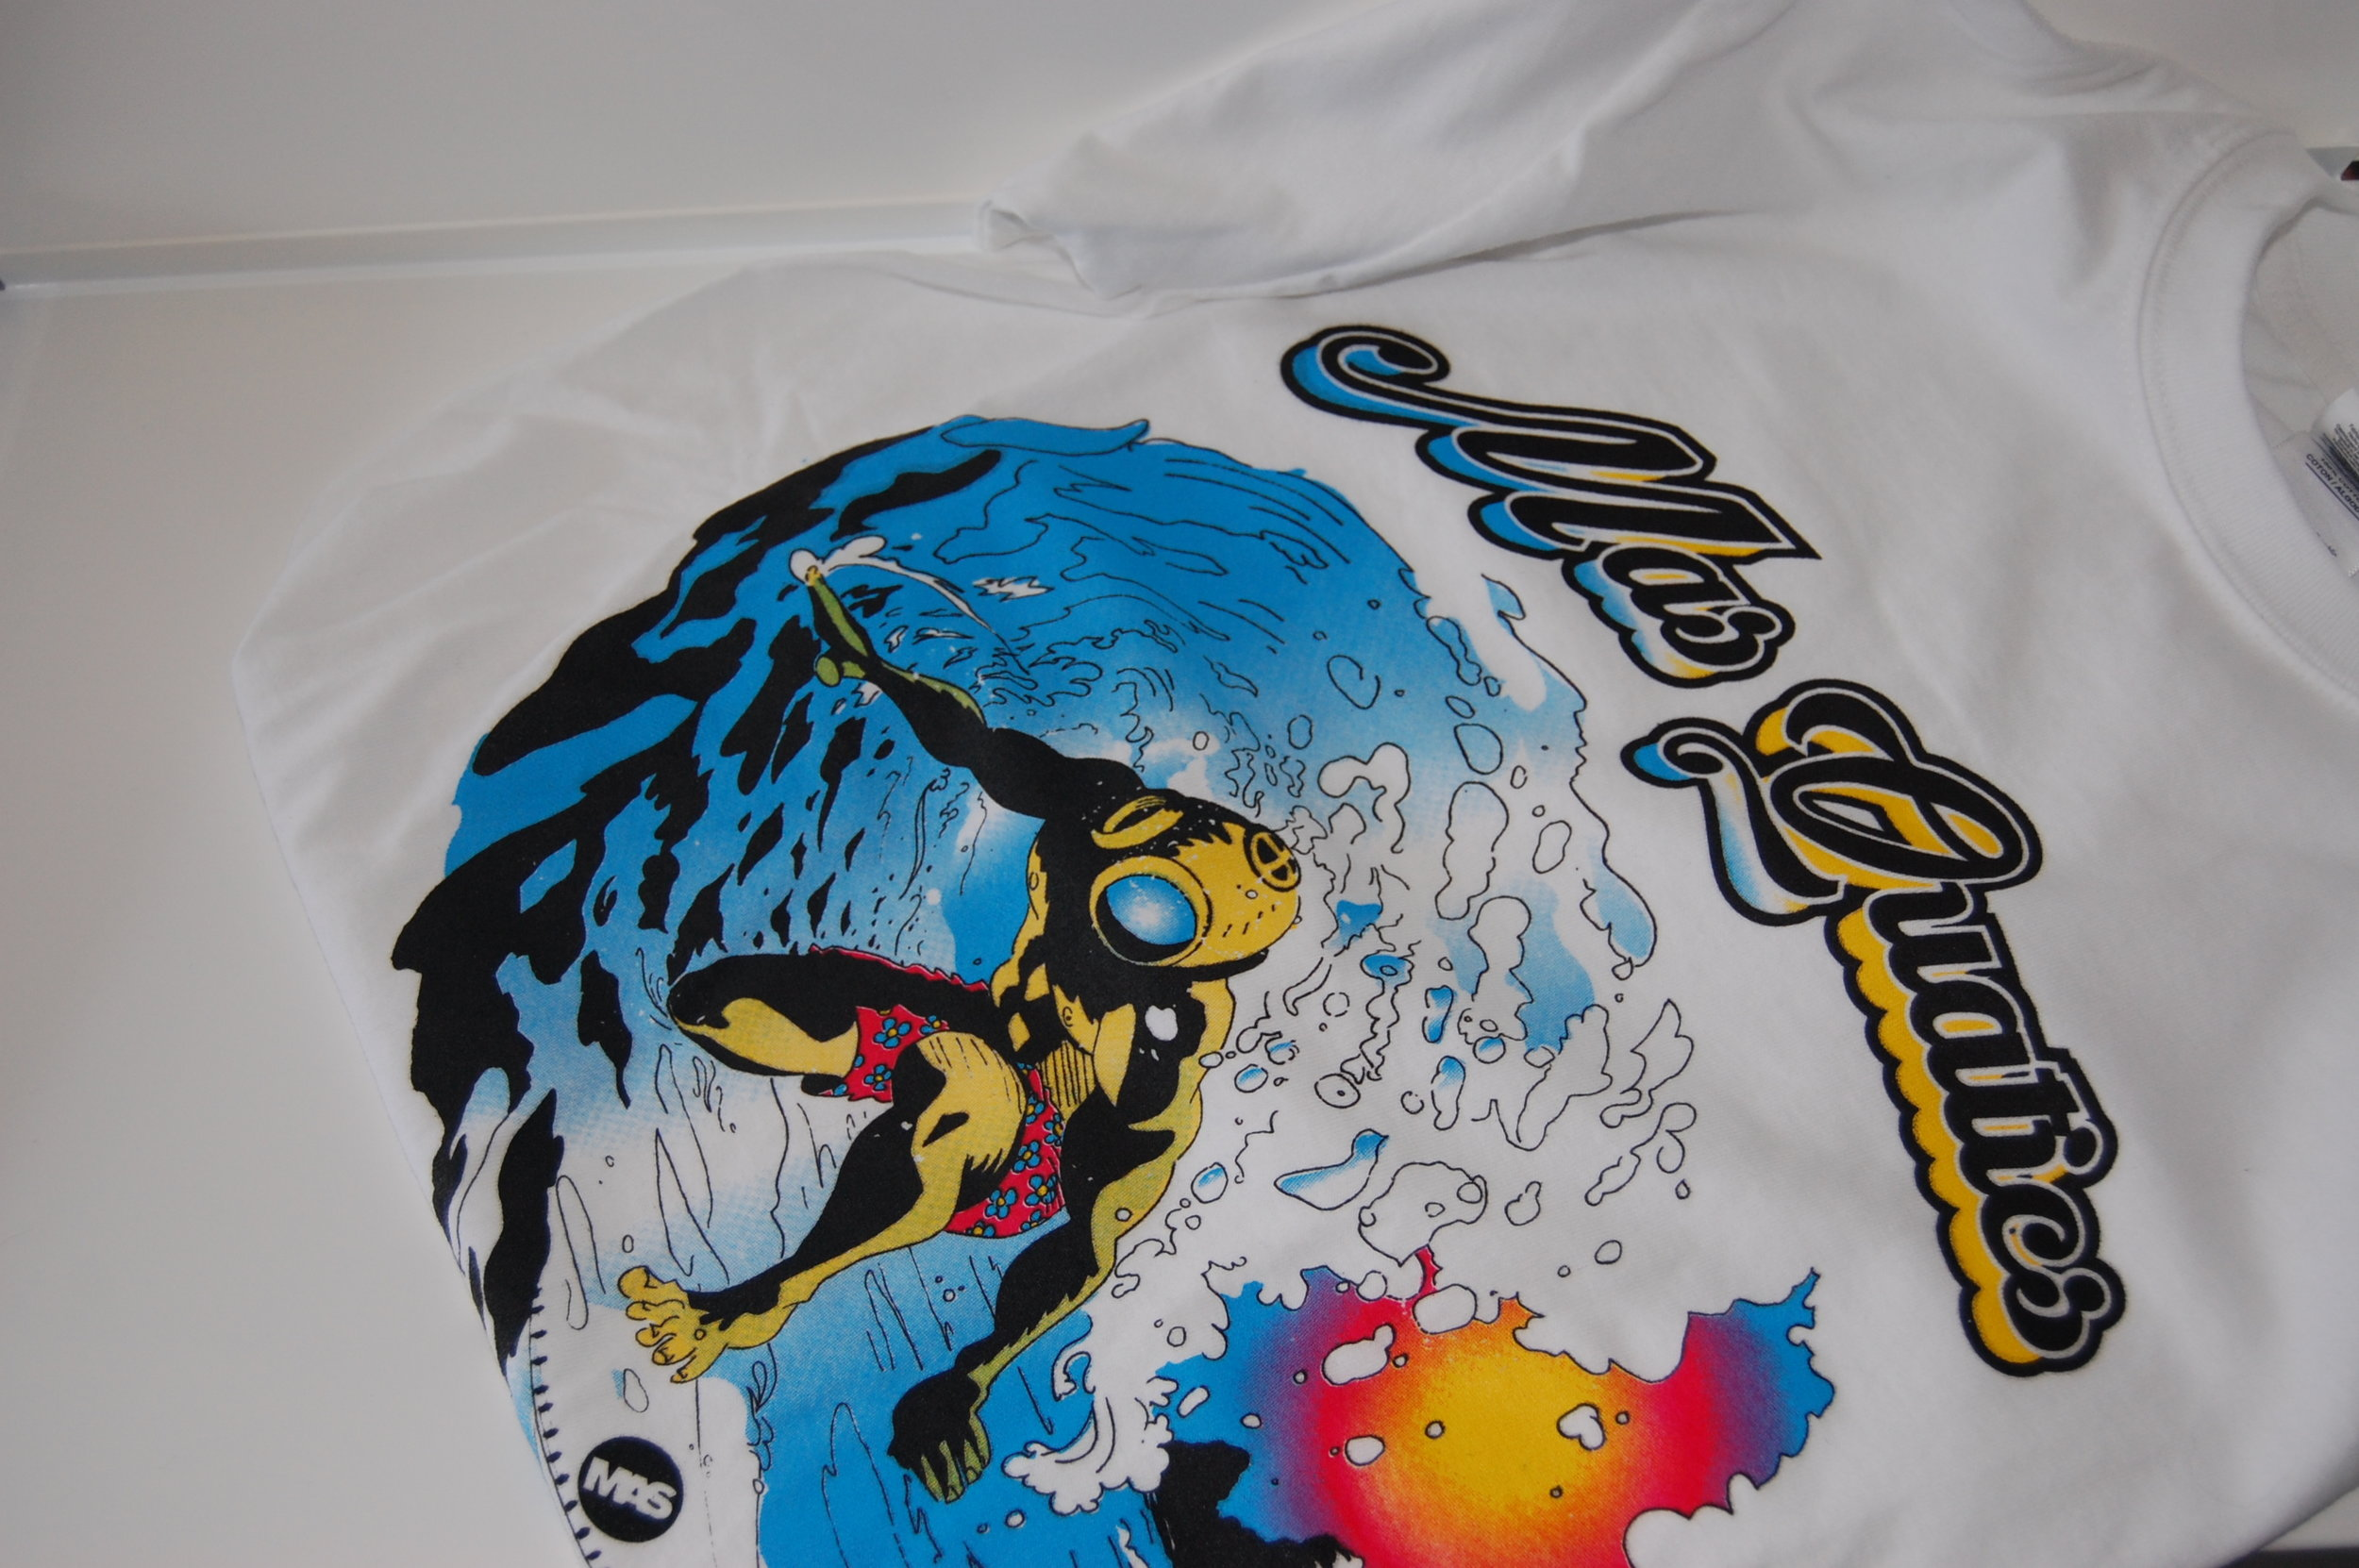 "MASQUATICS SHIRT   Our newest summer line ""Mas Quatics"". This print was achieved using halftone overlays.  In the center of the design, the 2-tone character, the Diver Surfer,  inspired by 80's and 90's surf art styles and the art of Jim Phillips, and R. Crumb.  The design began with a hand drawn illustration, followed by a live trace to digitally render it, opting for a live trace rather than a digital recreation to preserve a hand-drawn feel."